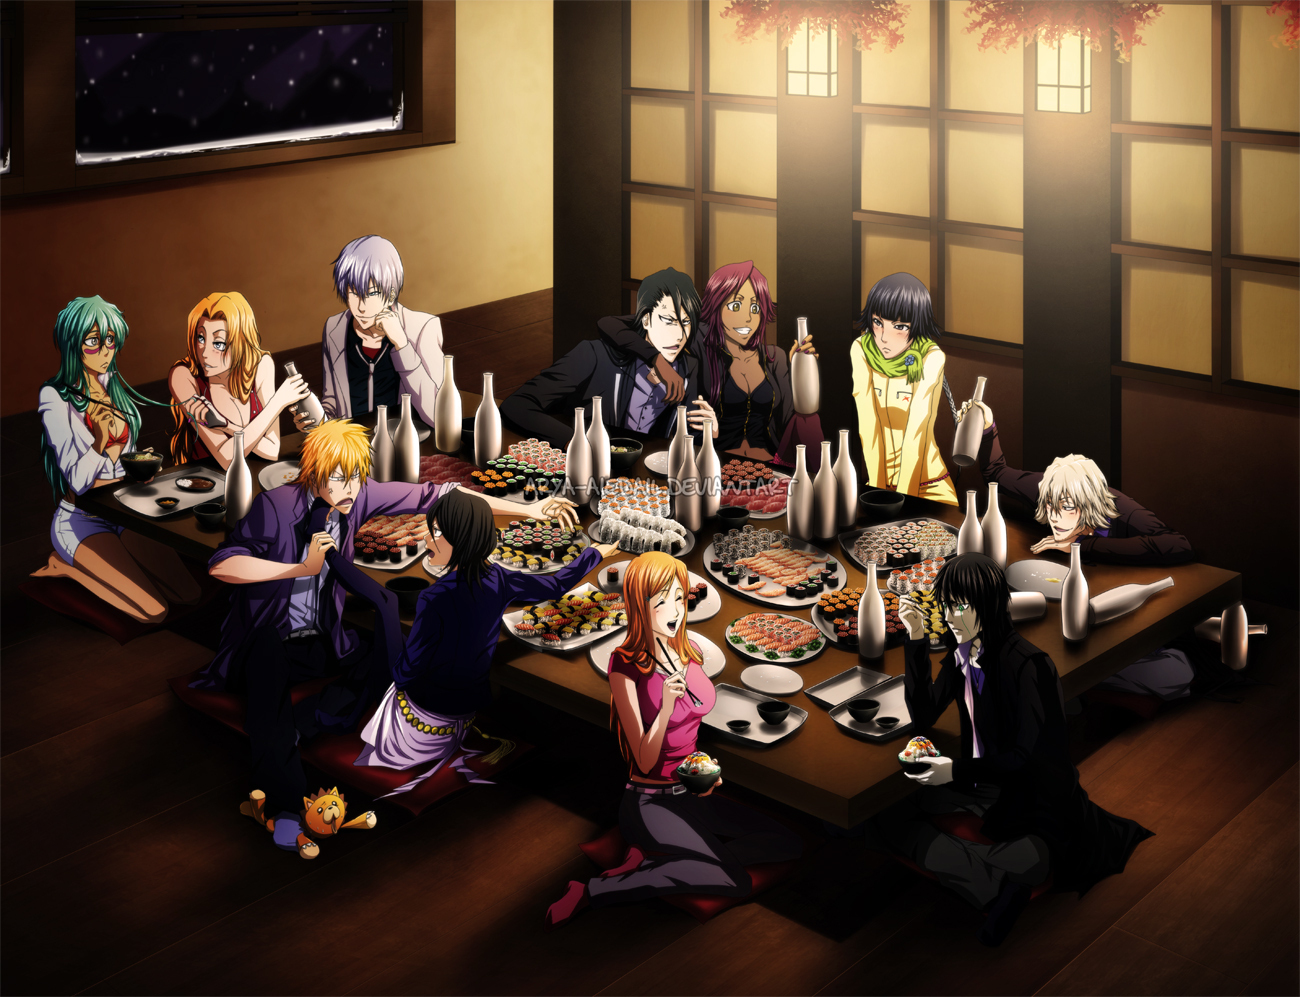 Anime Bleach Imagens Drinking Night Hd Wallpaper And Background